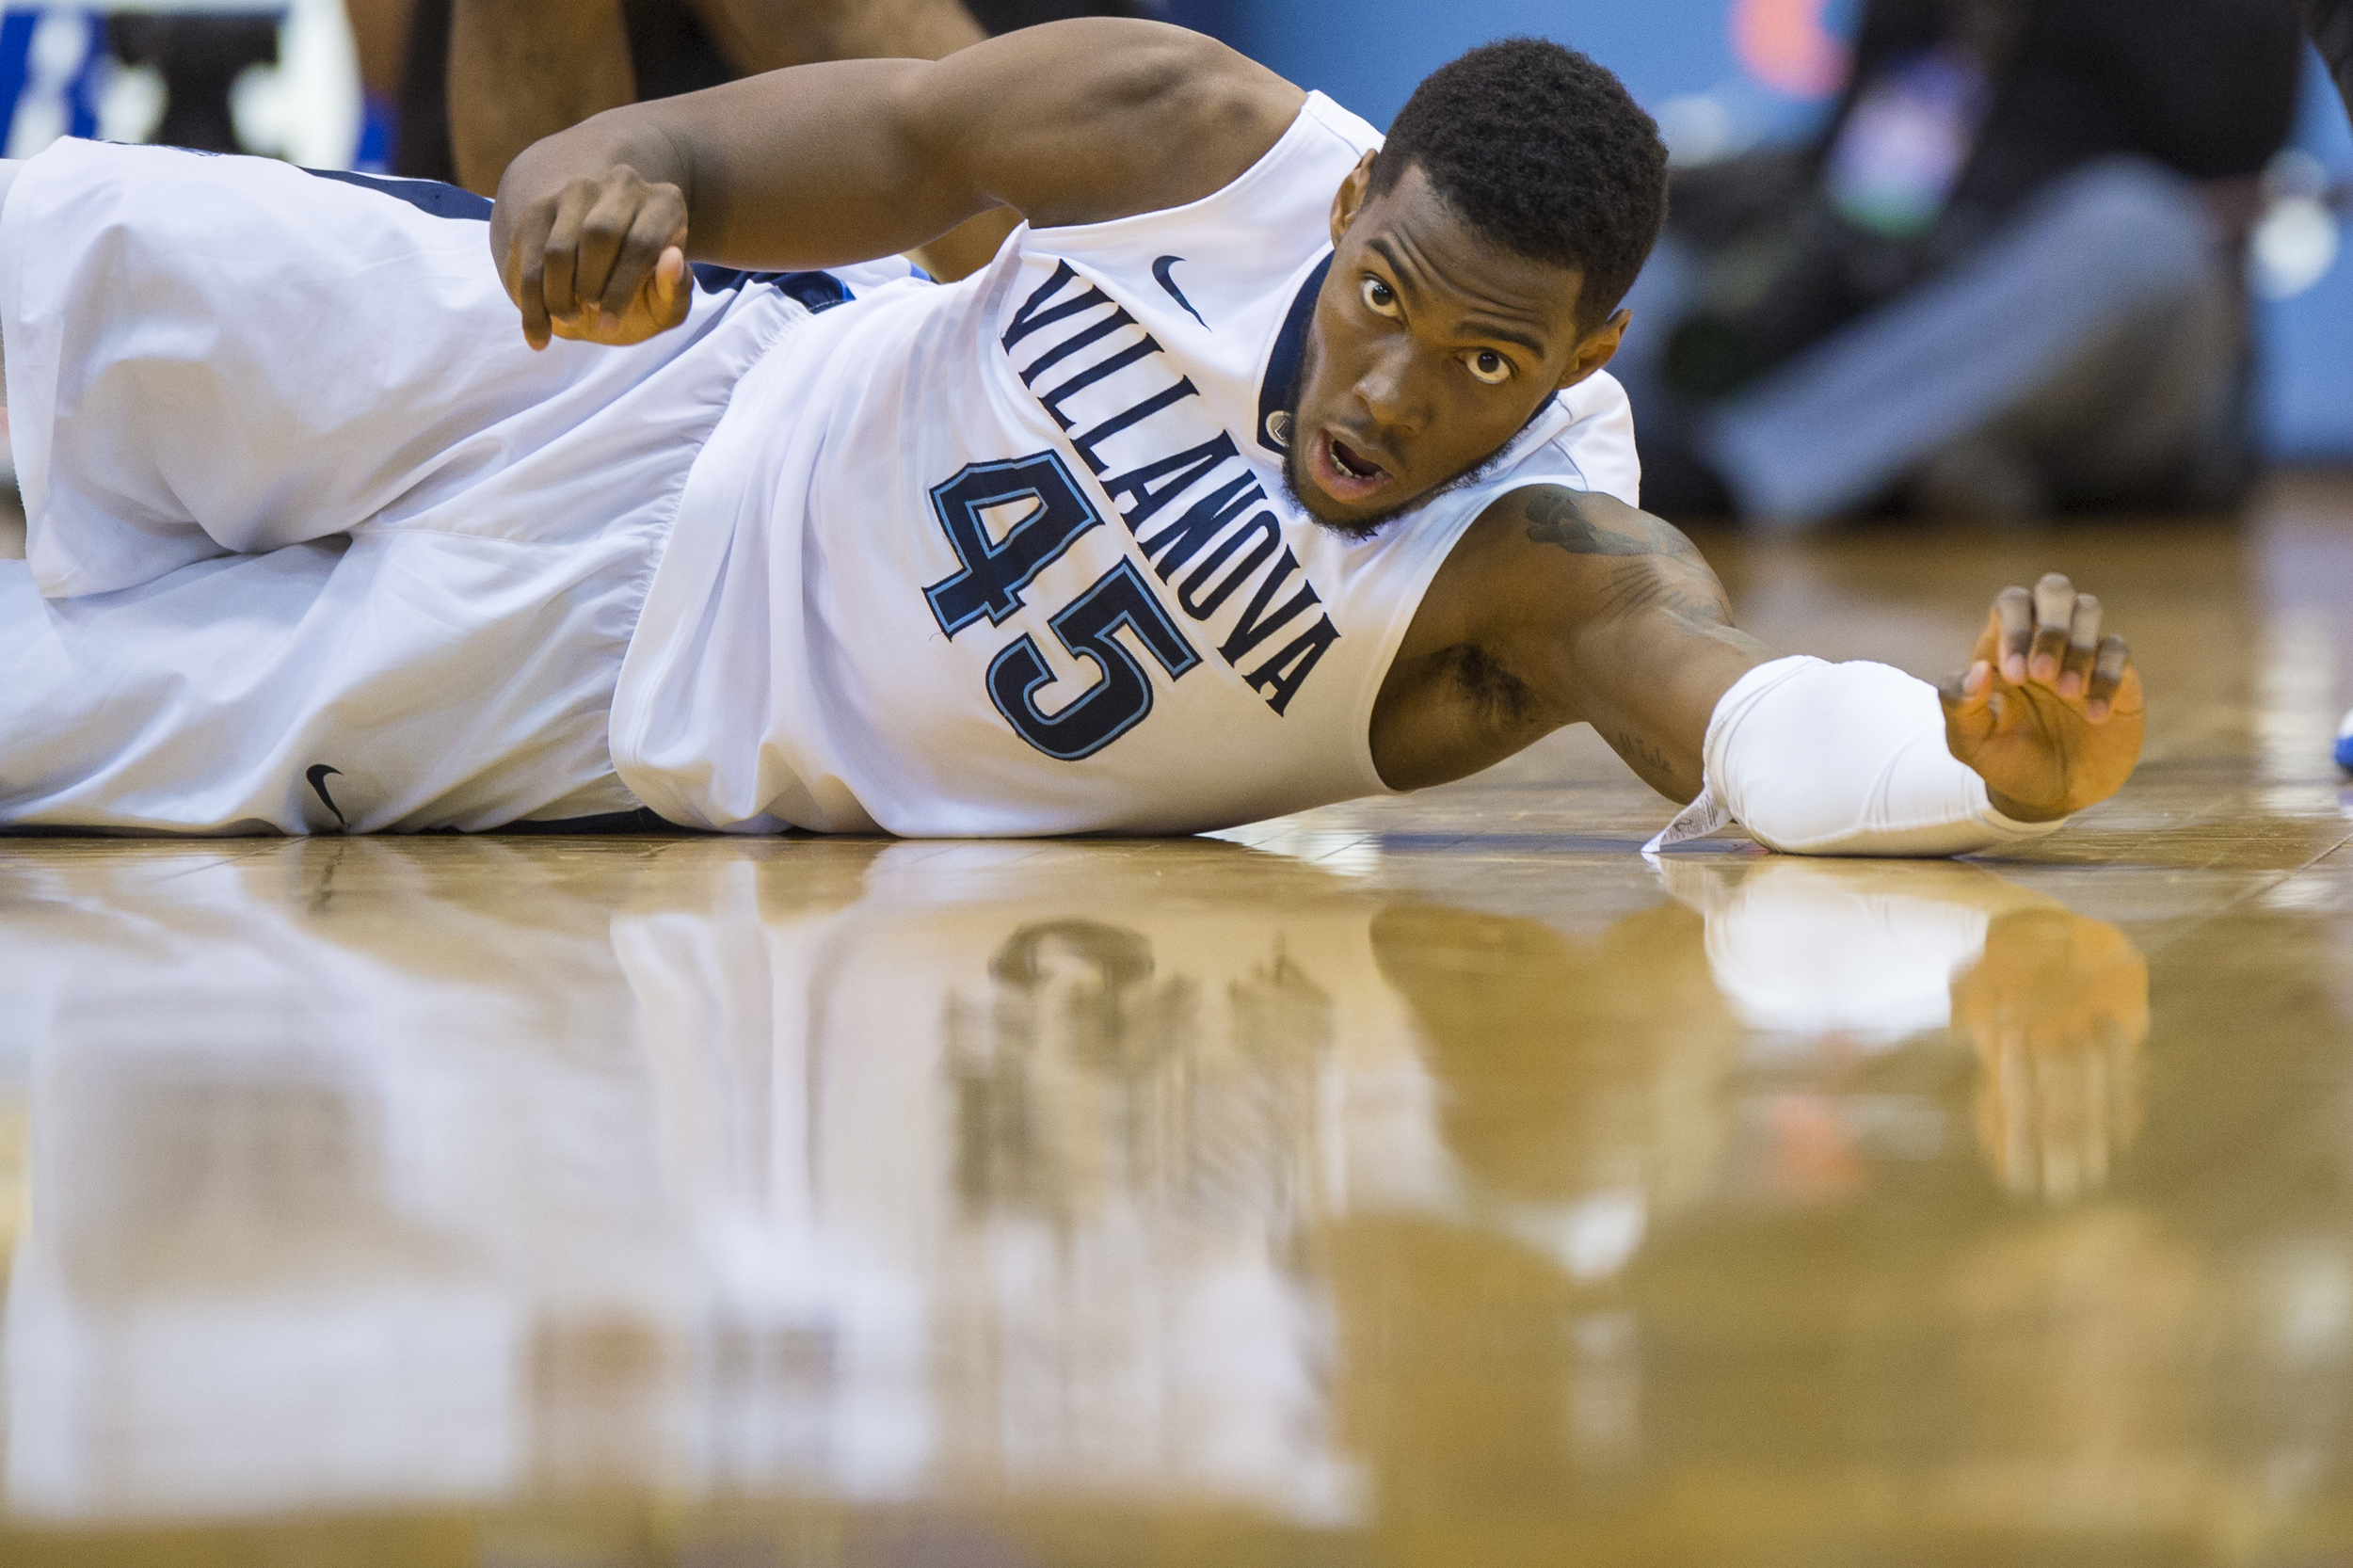 22 December 2015: Villanova Wildcats forward Darryl Reynolds (45) slides across the floor during the NCAA basketball game between the Delaware Blue Hens and the Villanova Wildcats played at the Pavillion in Villanova, PA. (Photo by Gavin Baker/Icon Sportswire)